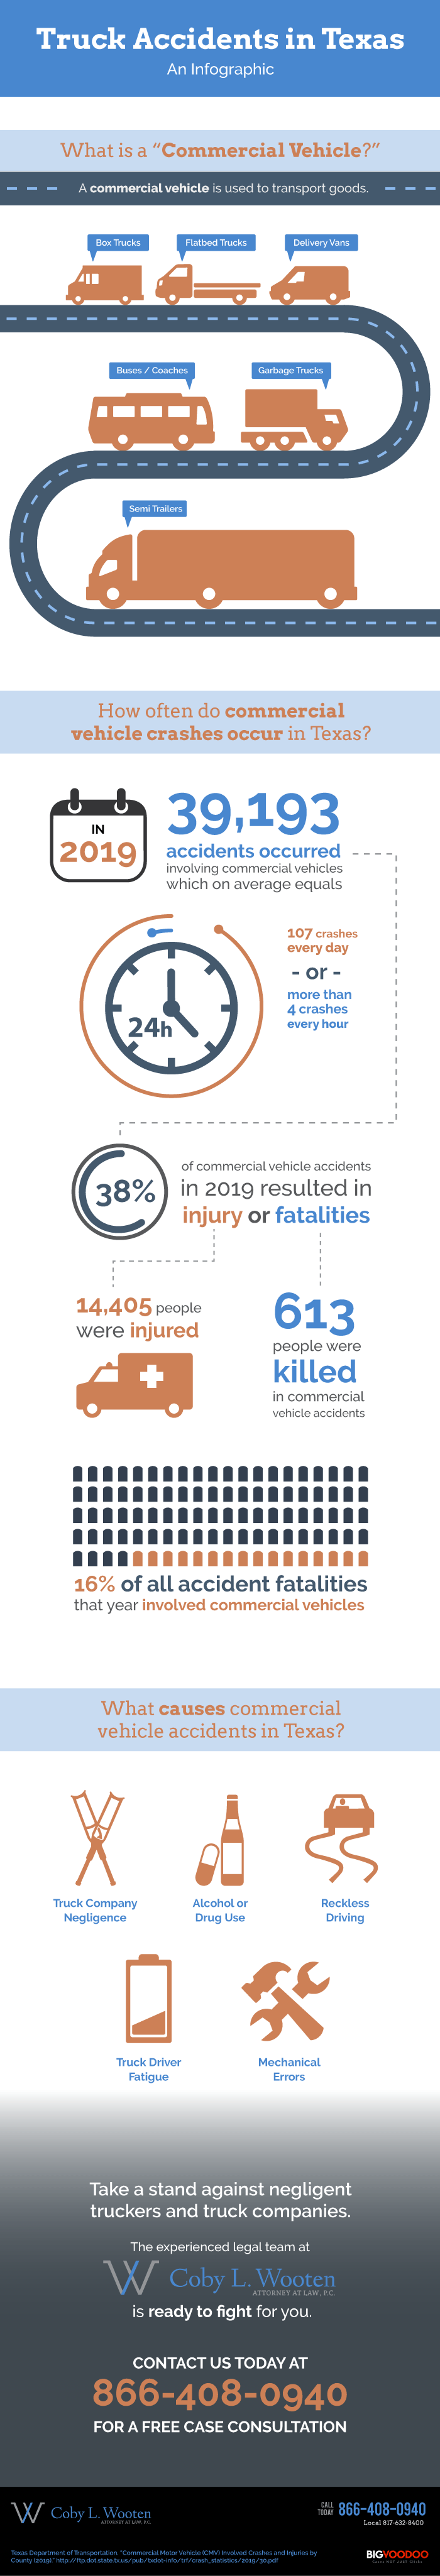 Texas Truck Accidents infographic